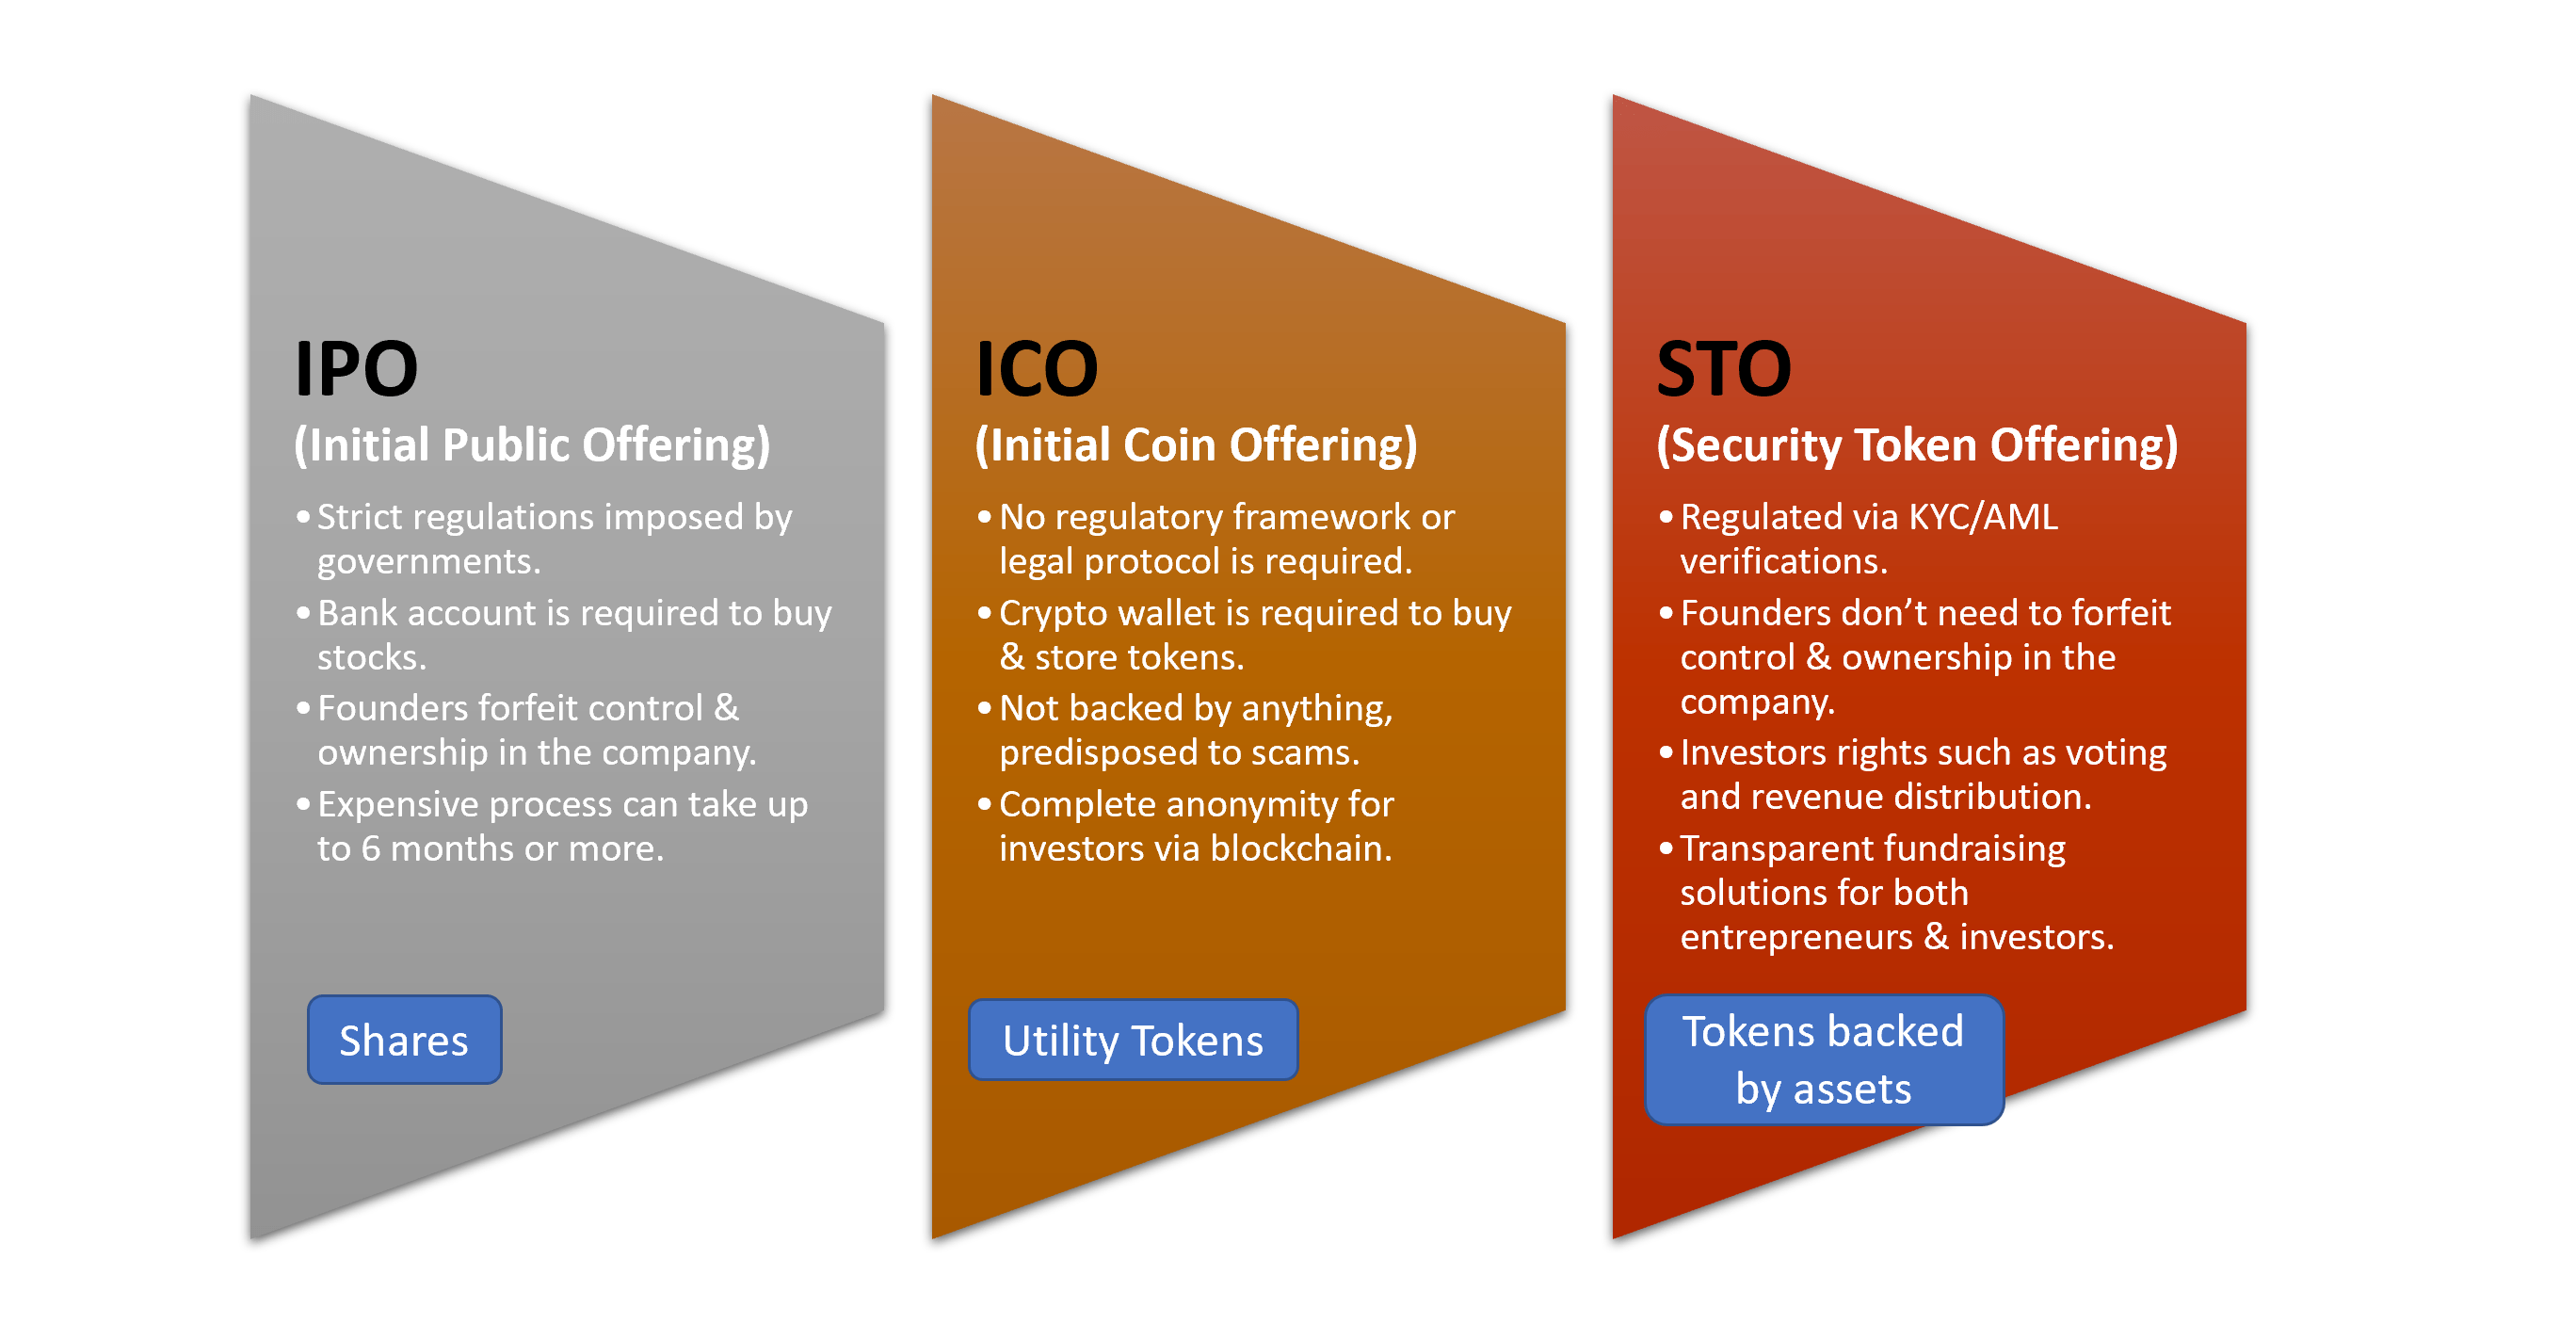 Security Token Offerings (STO) VS Initial Public Offerings (IPO)